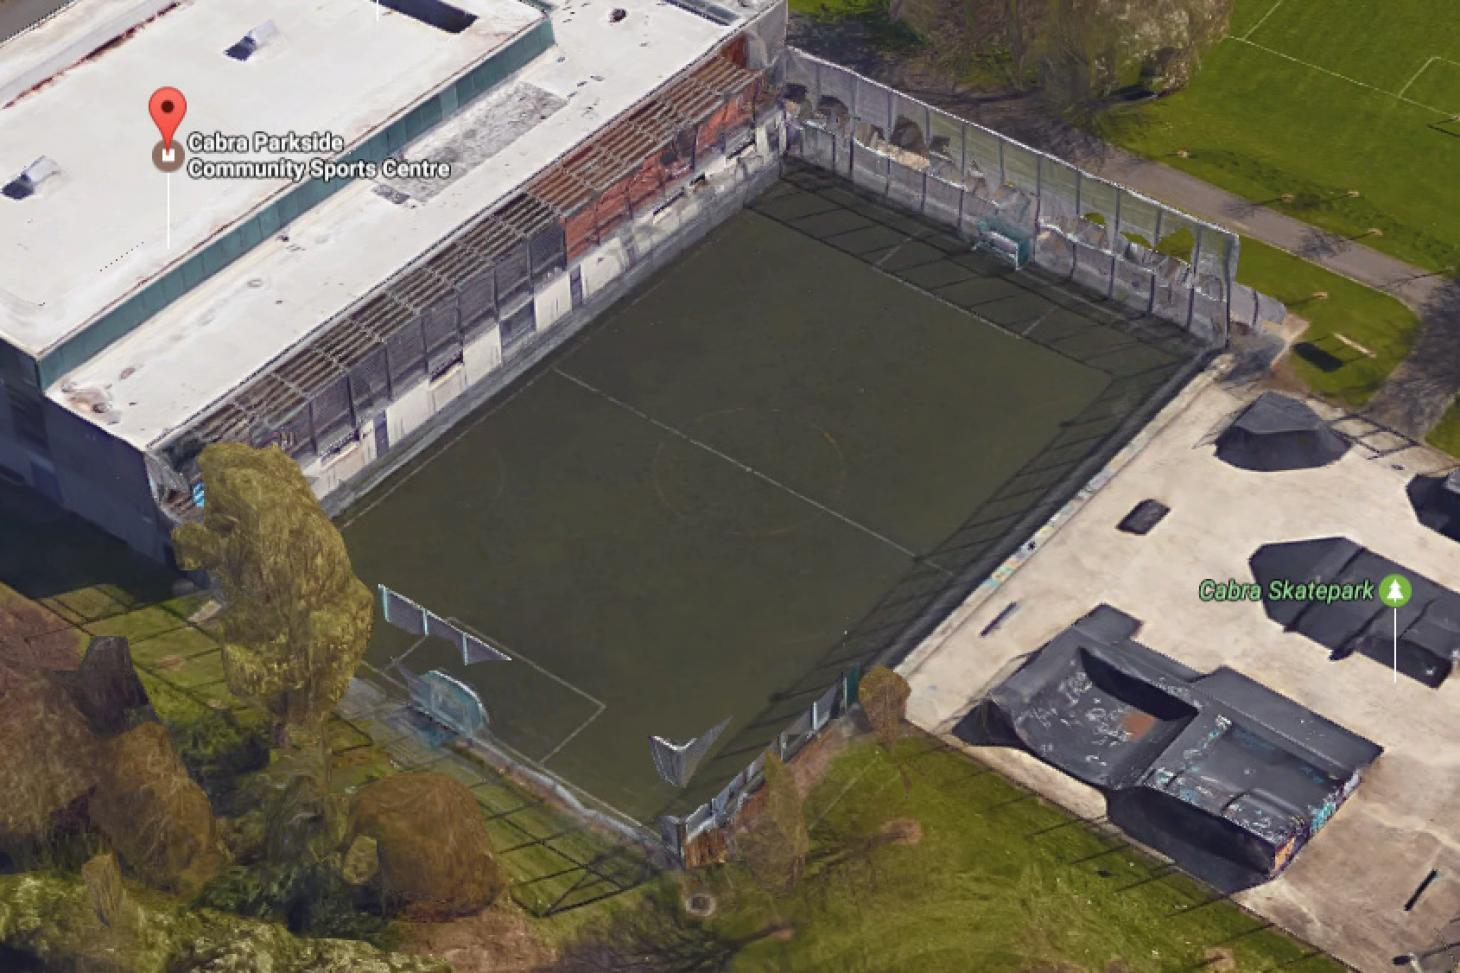 Cabra Parkside Community and Sports Centre 5 a side | Astroturf football pitch